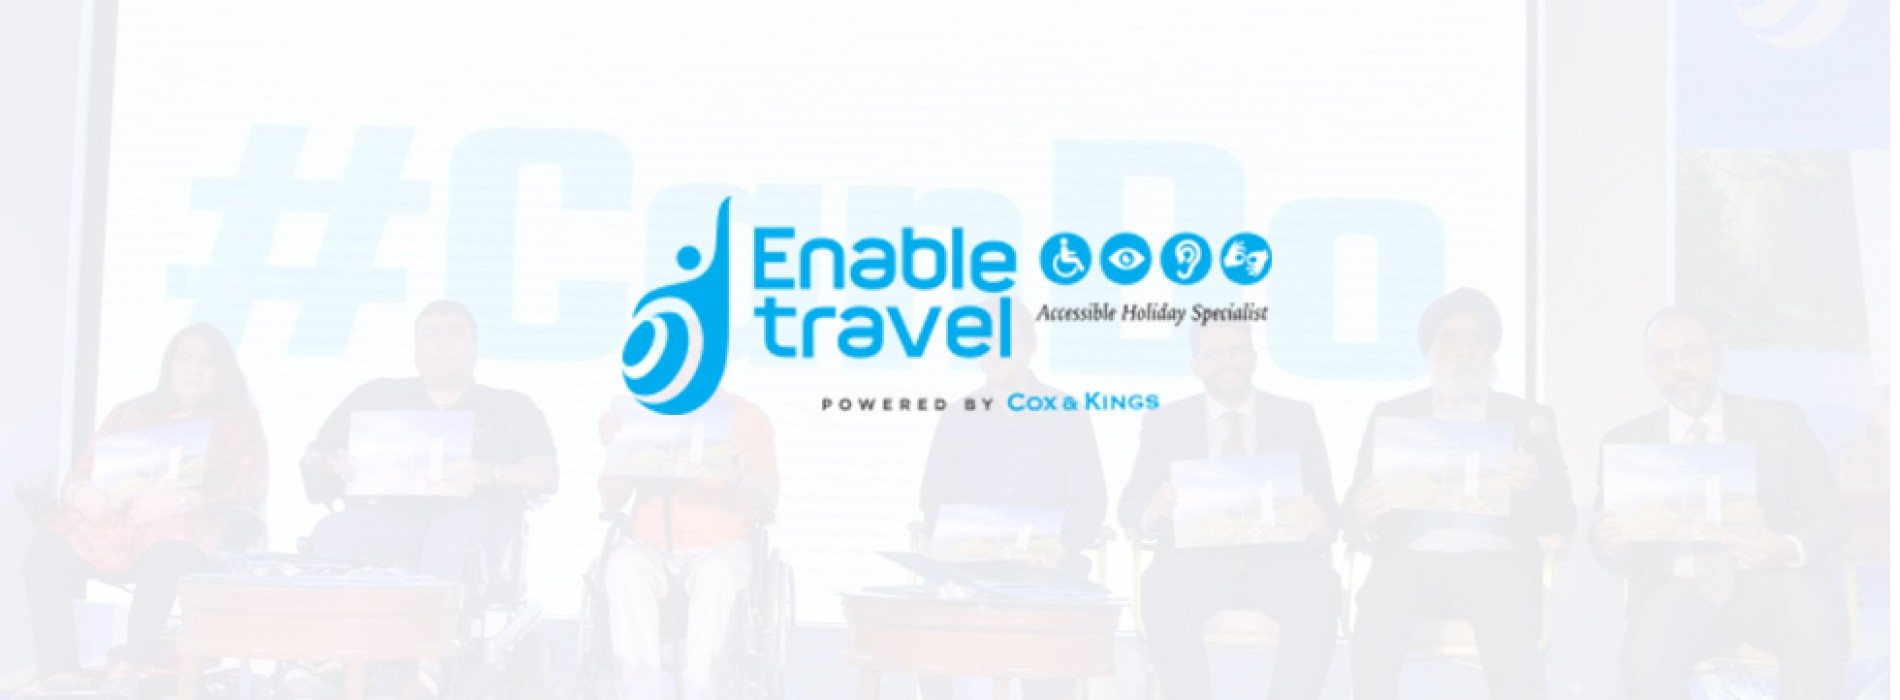 'Enable Travel' powered by Cox & Kings to make travel barrier-free for People with Disabilities